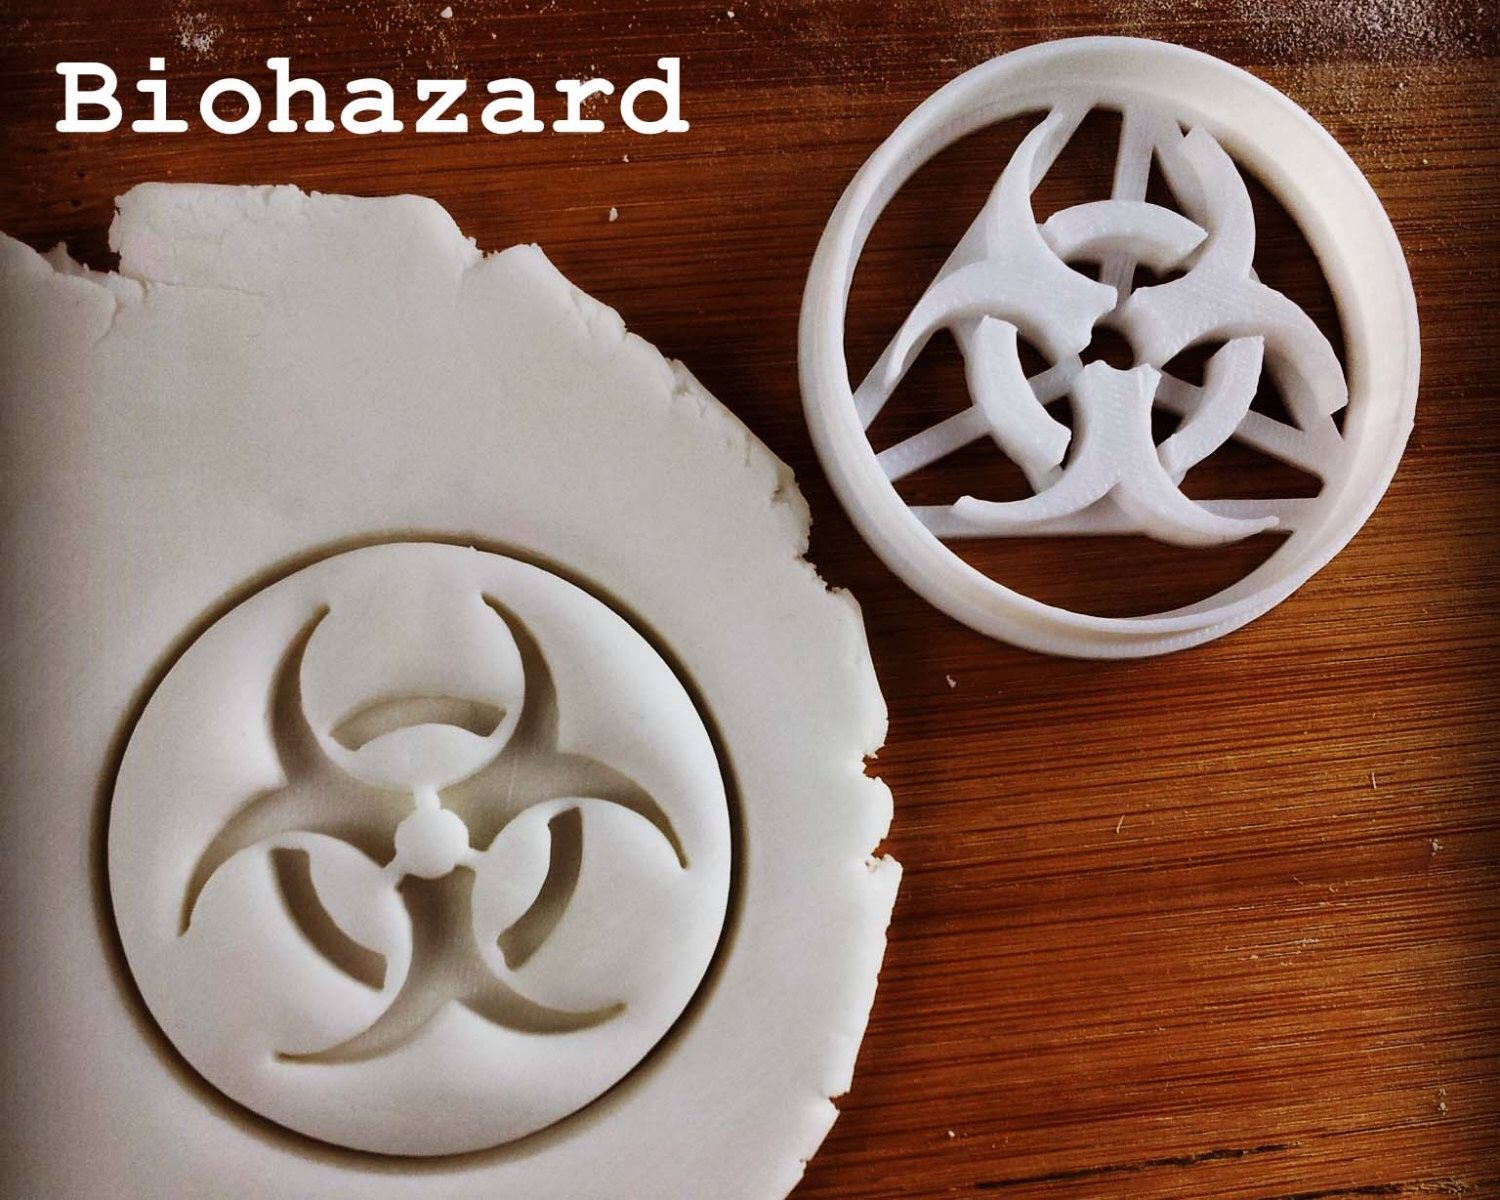 Biohazard other science symbols cookies cutters biscuits cutter biohazard other science symbols cookies cutters biscuits cutter laboratory hazardous symbol biological hazard biohazardous buycottarizona Image collections